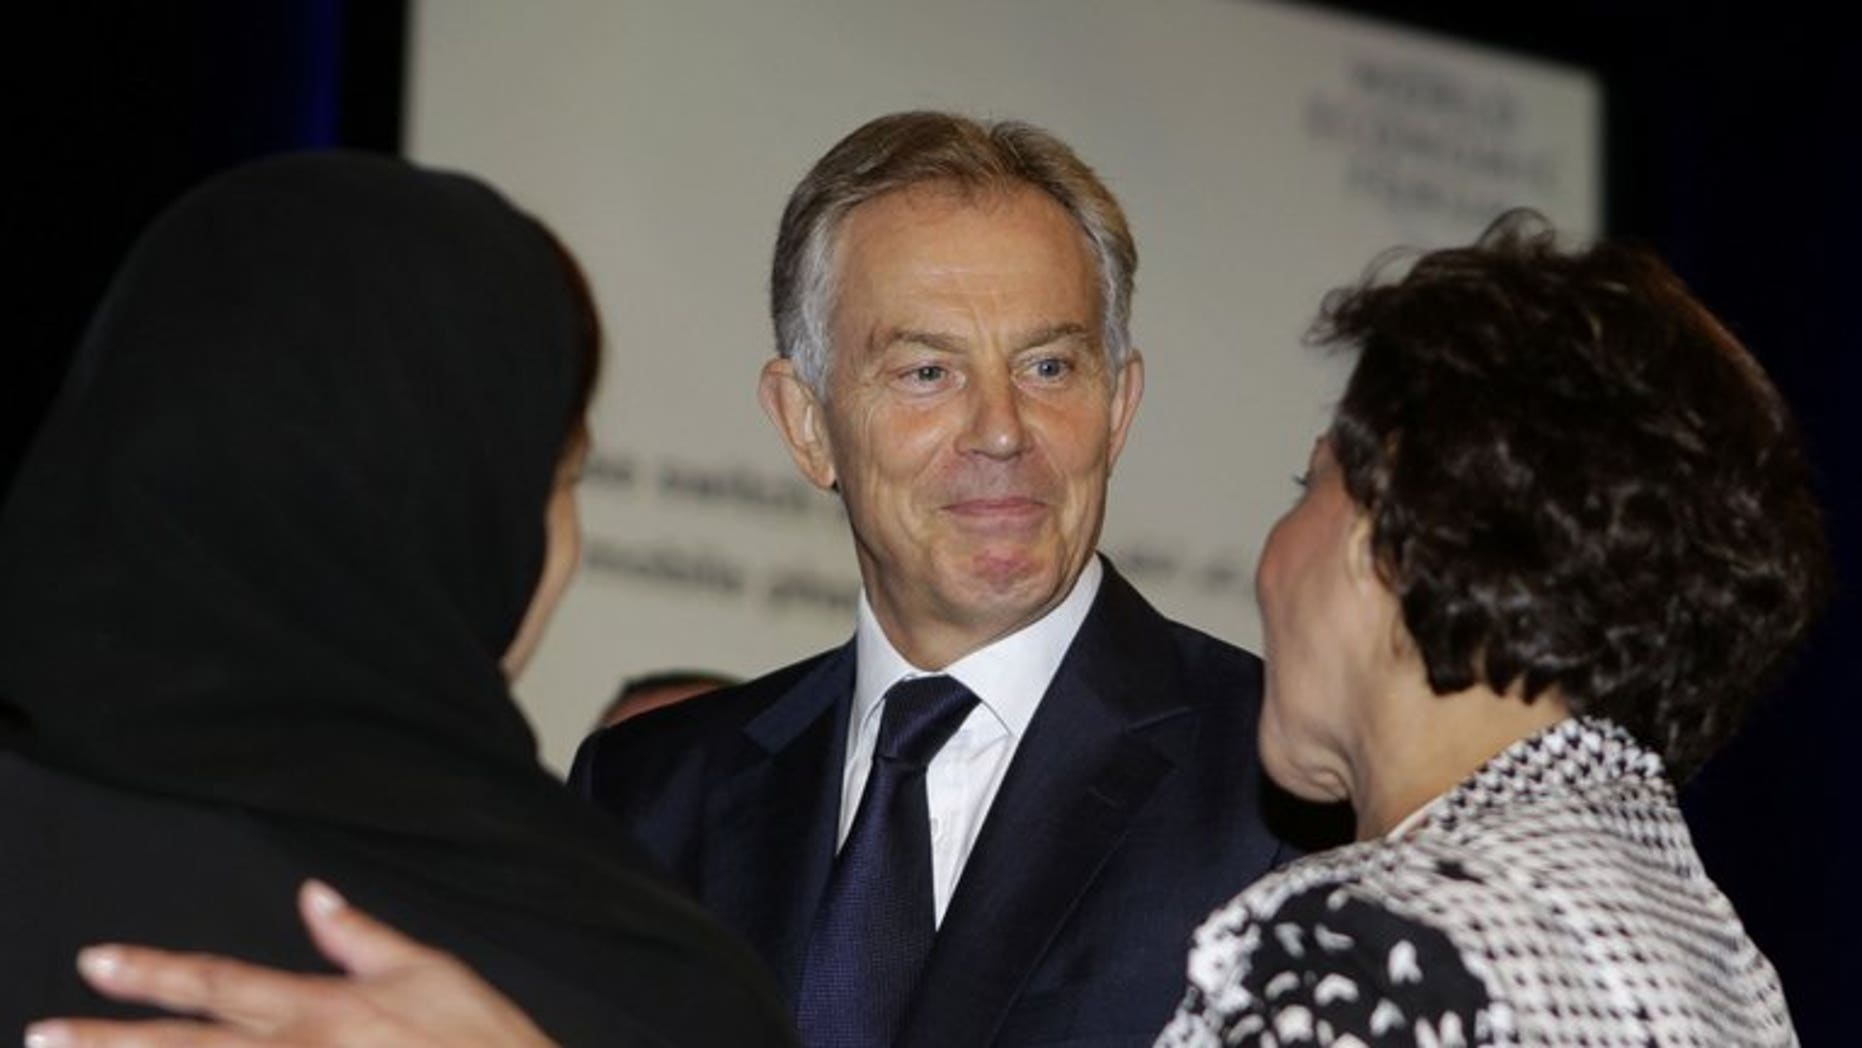 Tony Blair talks to other delegates at a conference in Jordan last month. Time is running out for the Middle East peace process, which must move forward or face total failure, the former British prime minister said on Wednesday.